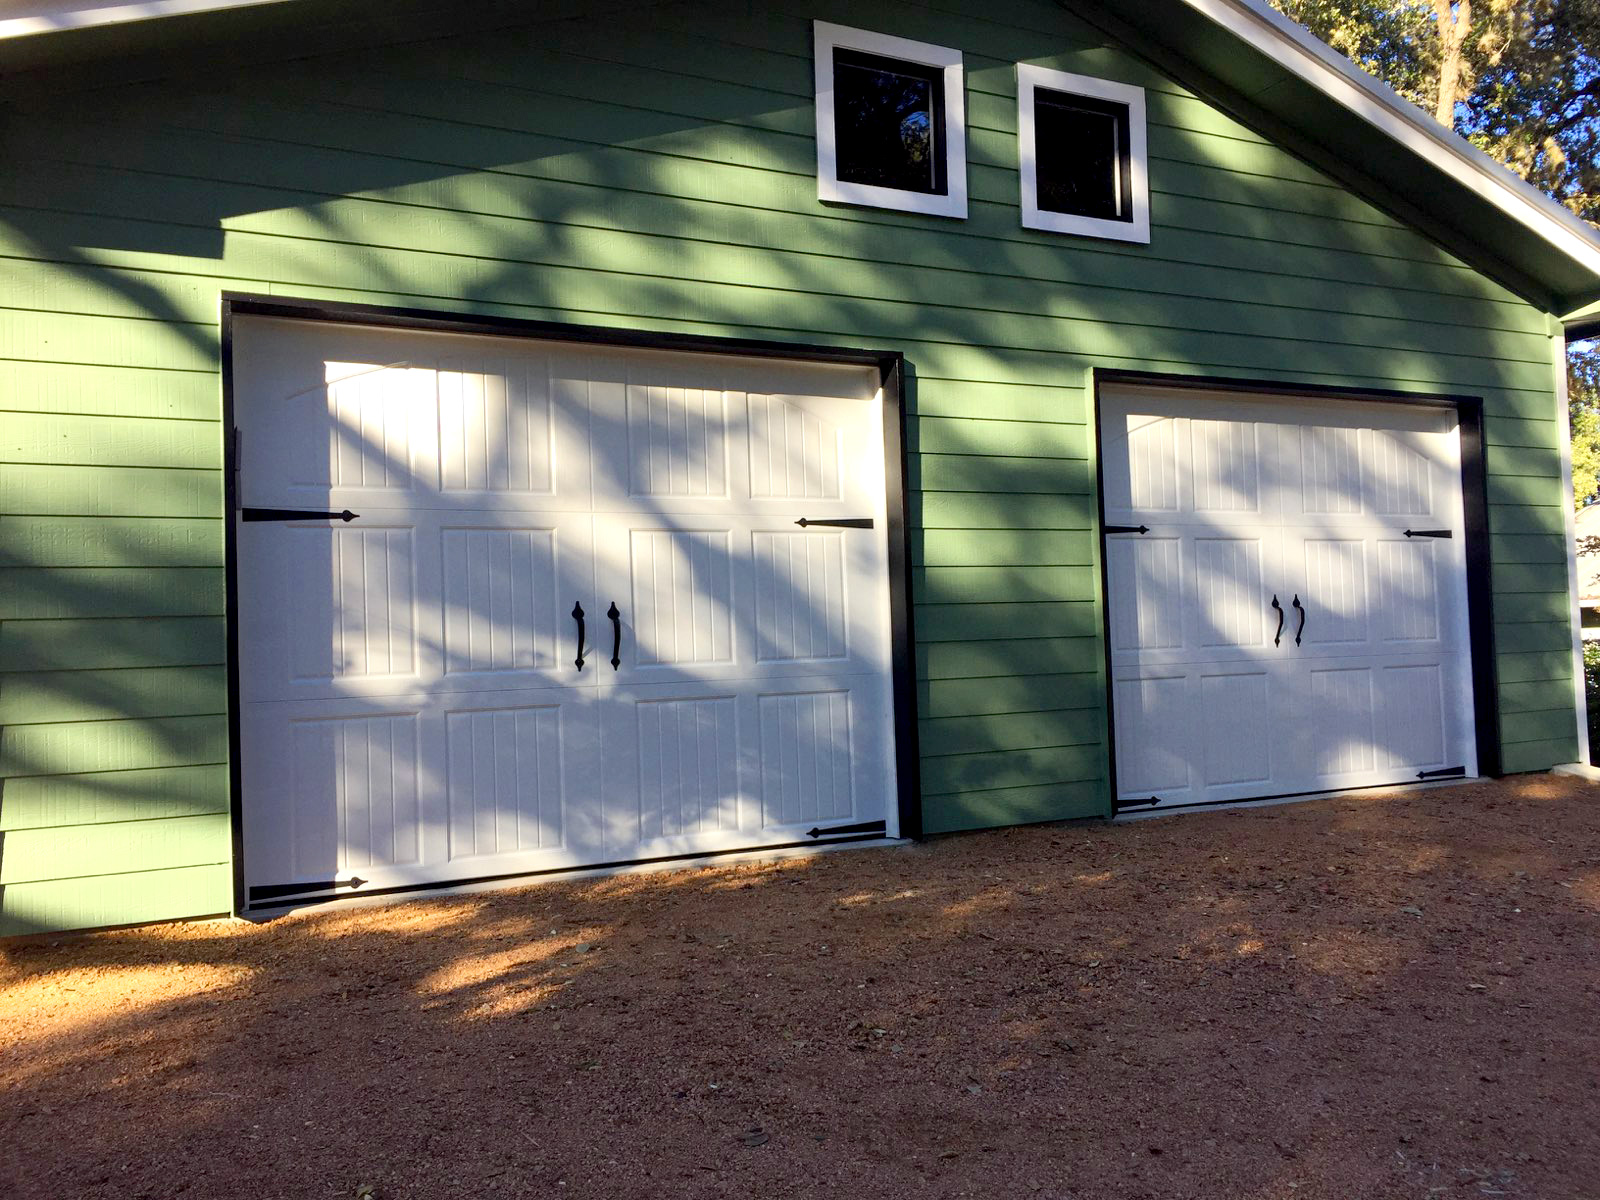 Garage Doors El Paso Texas Taylor Garage Door Repair Overhead Commercial Garage Doors In